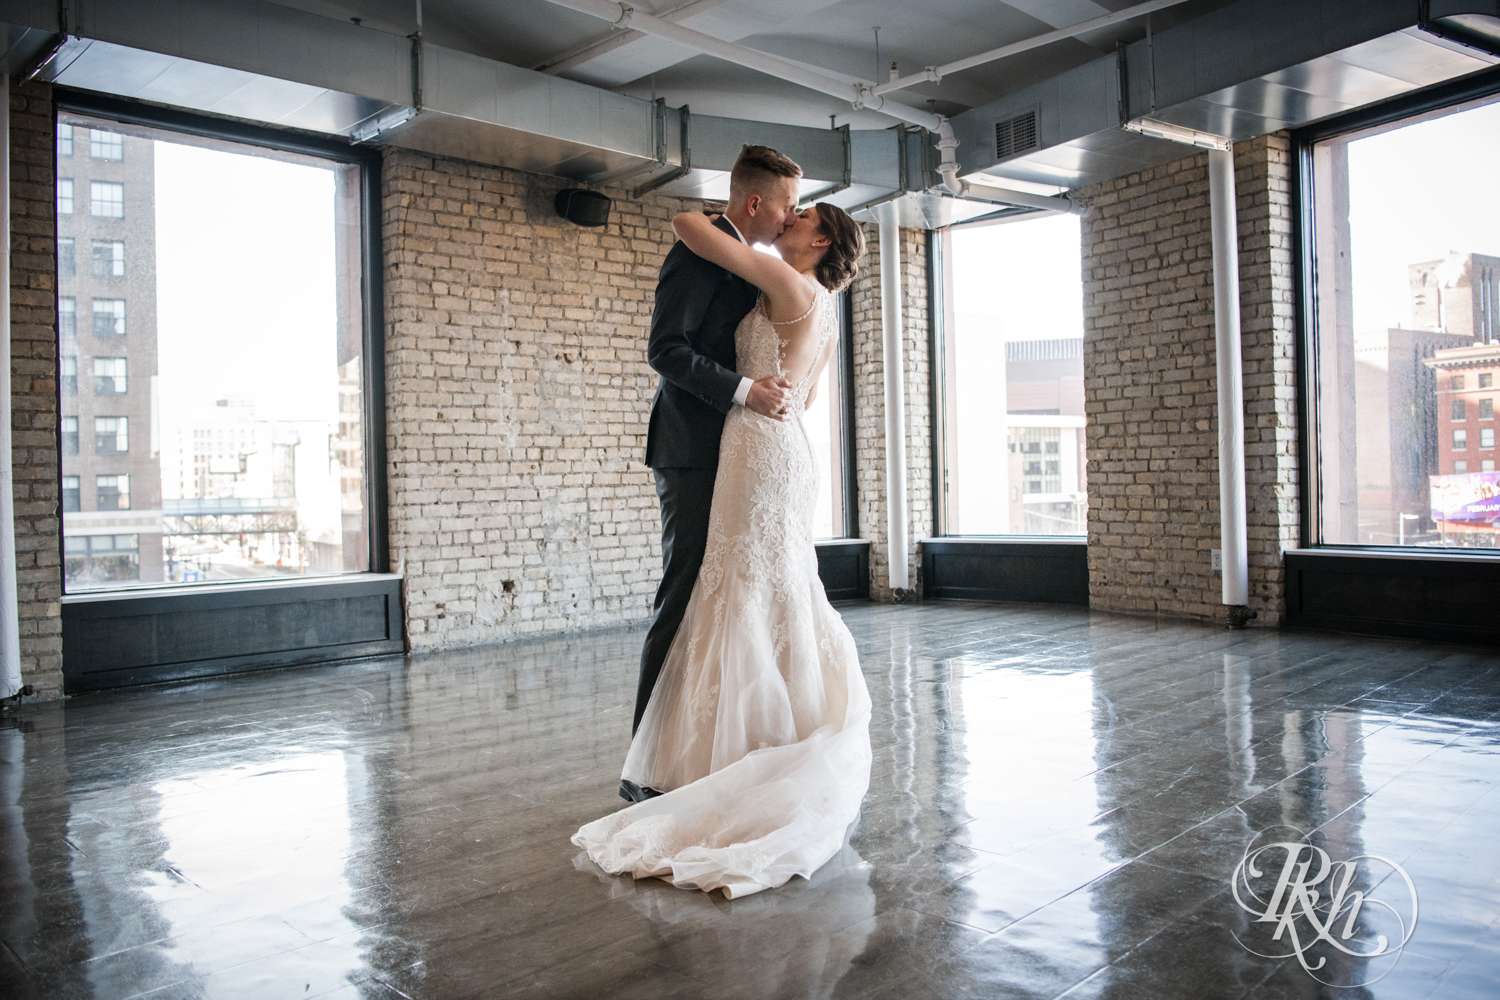 Jillian & Jared - Minnesota Wedding Photography - Lumber Exchange Event Center - RKH Images - Blog (21 of 87).jpg